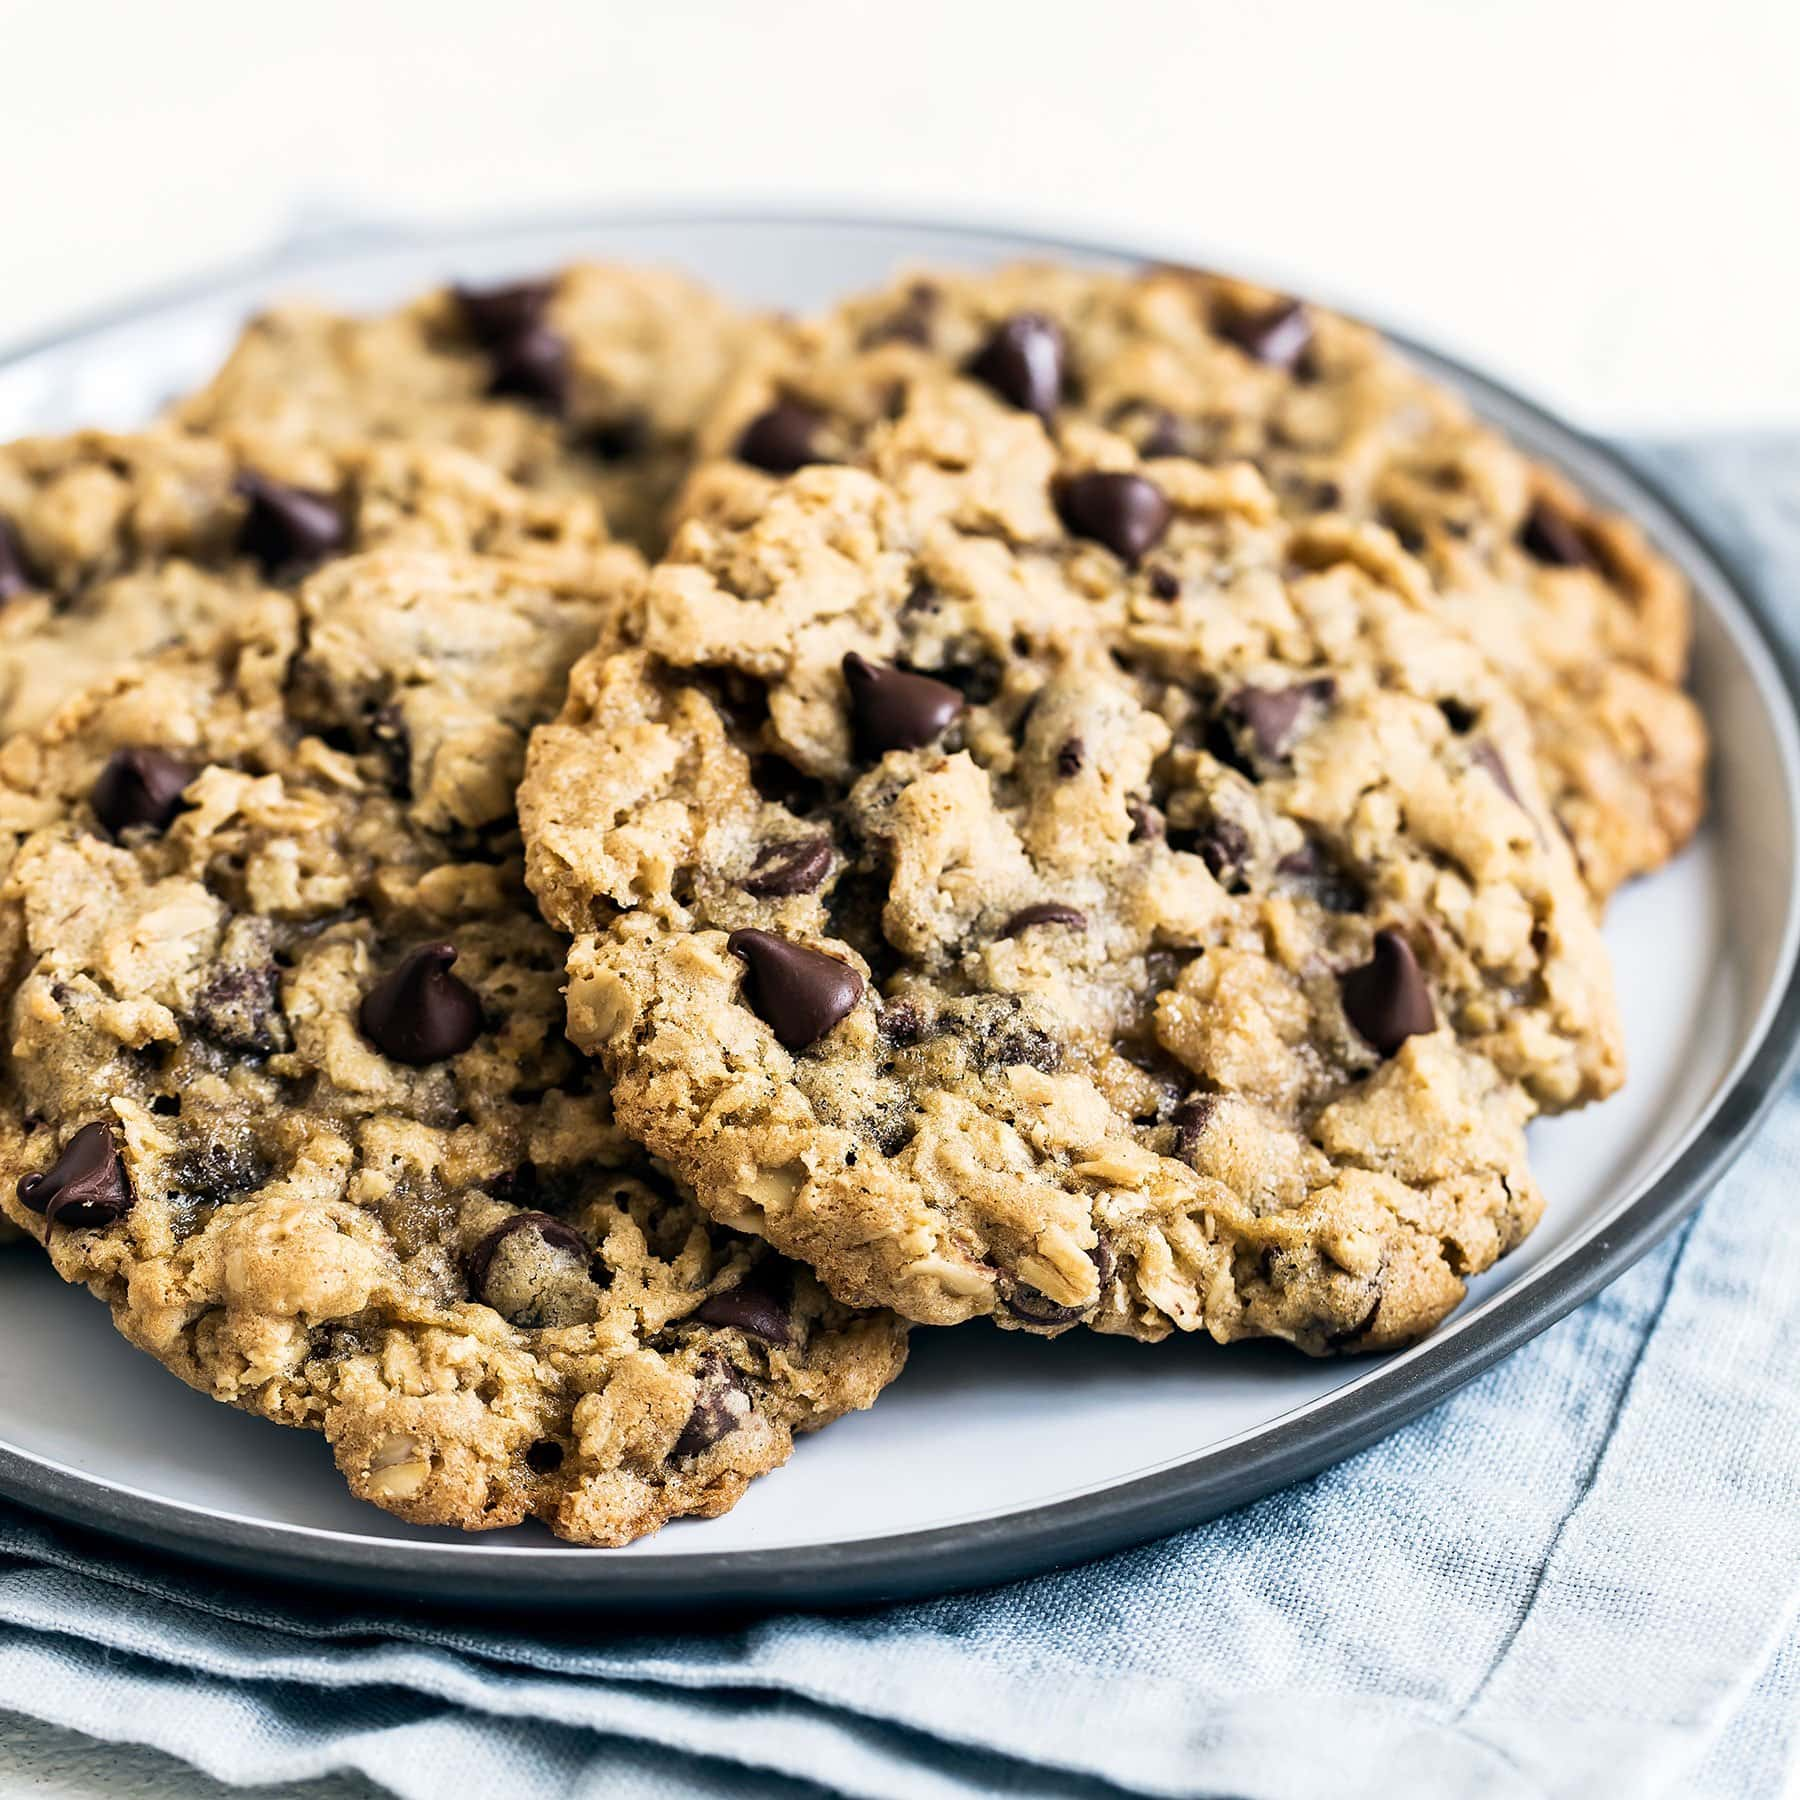 Thick, chewy, and soft, these oatmeal chocolate chip cookies are bursting with ooey gooey chocolate goodness that everyone will love.